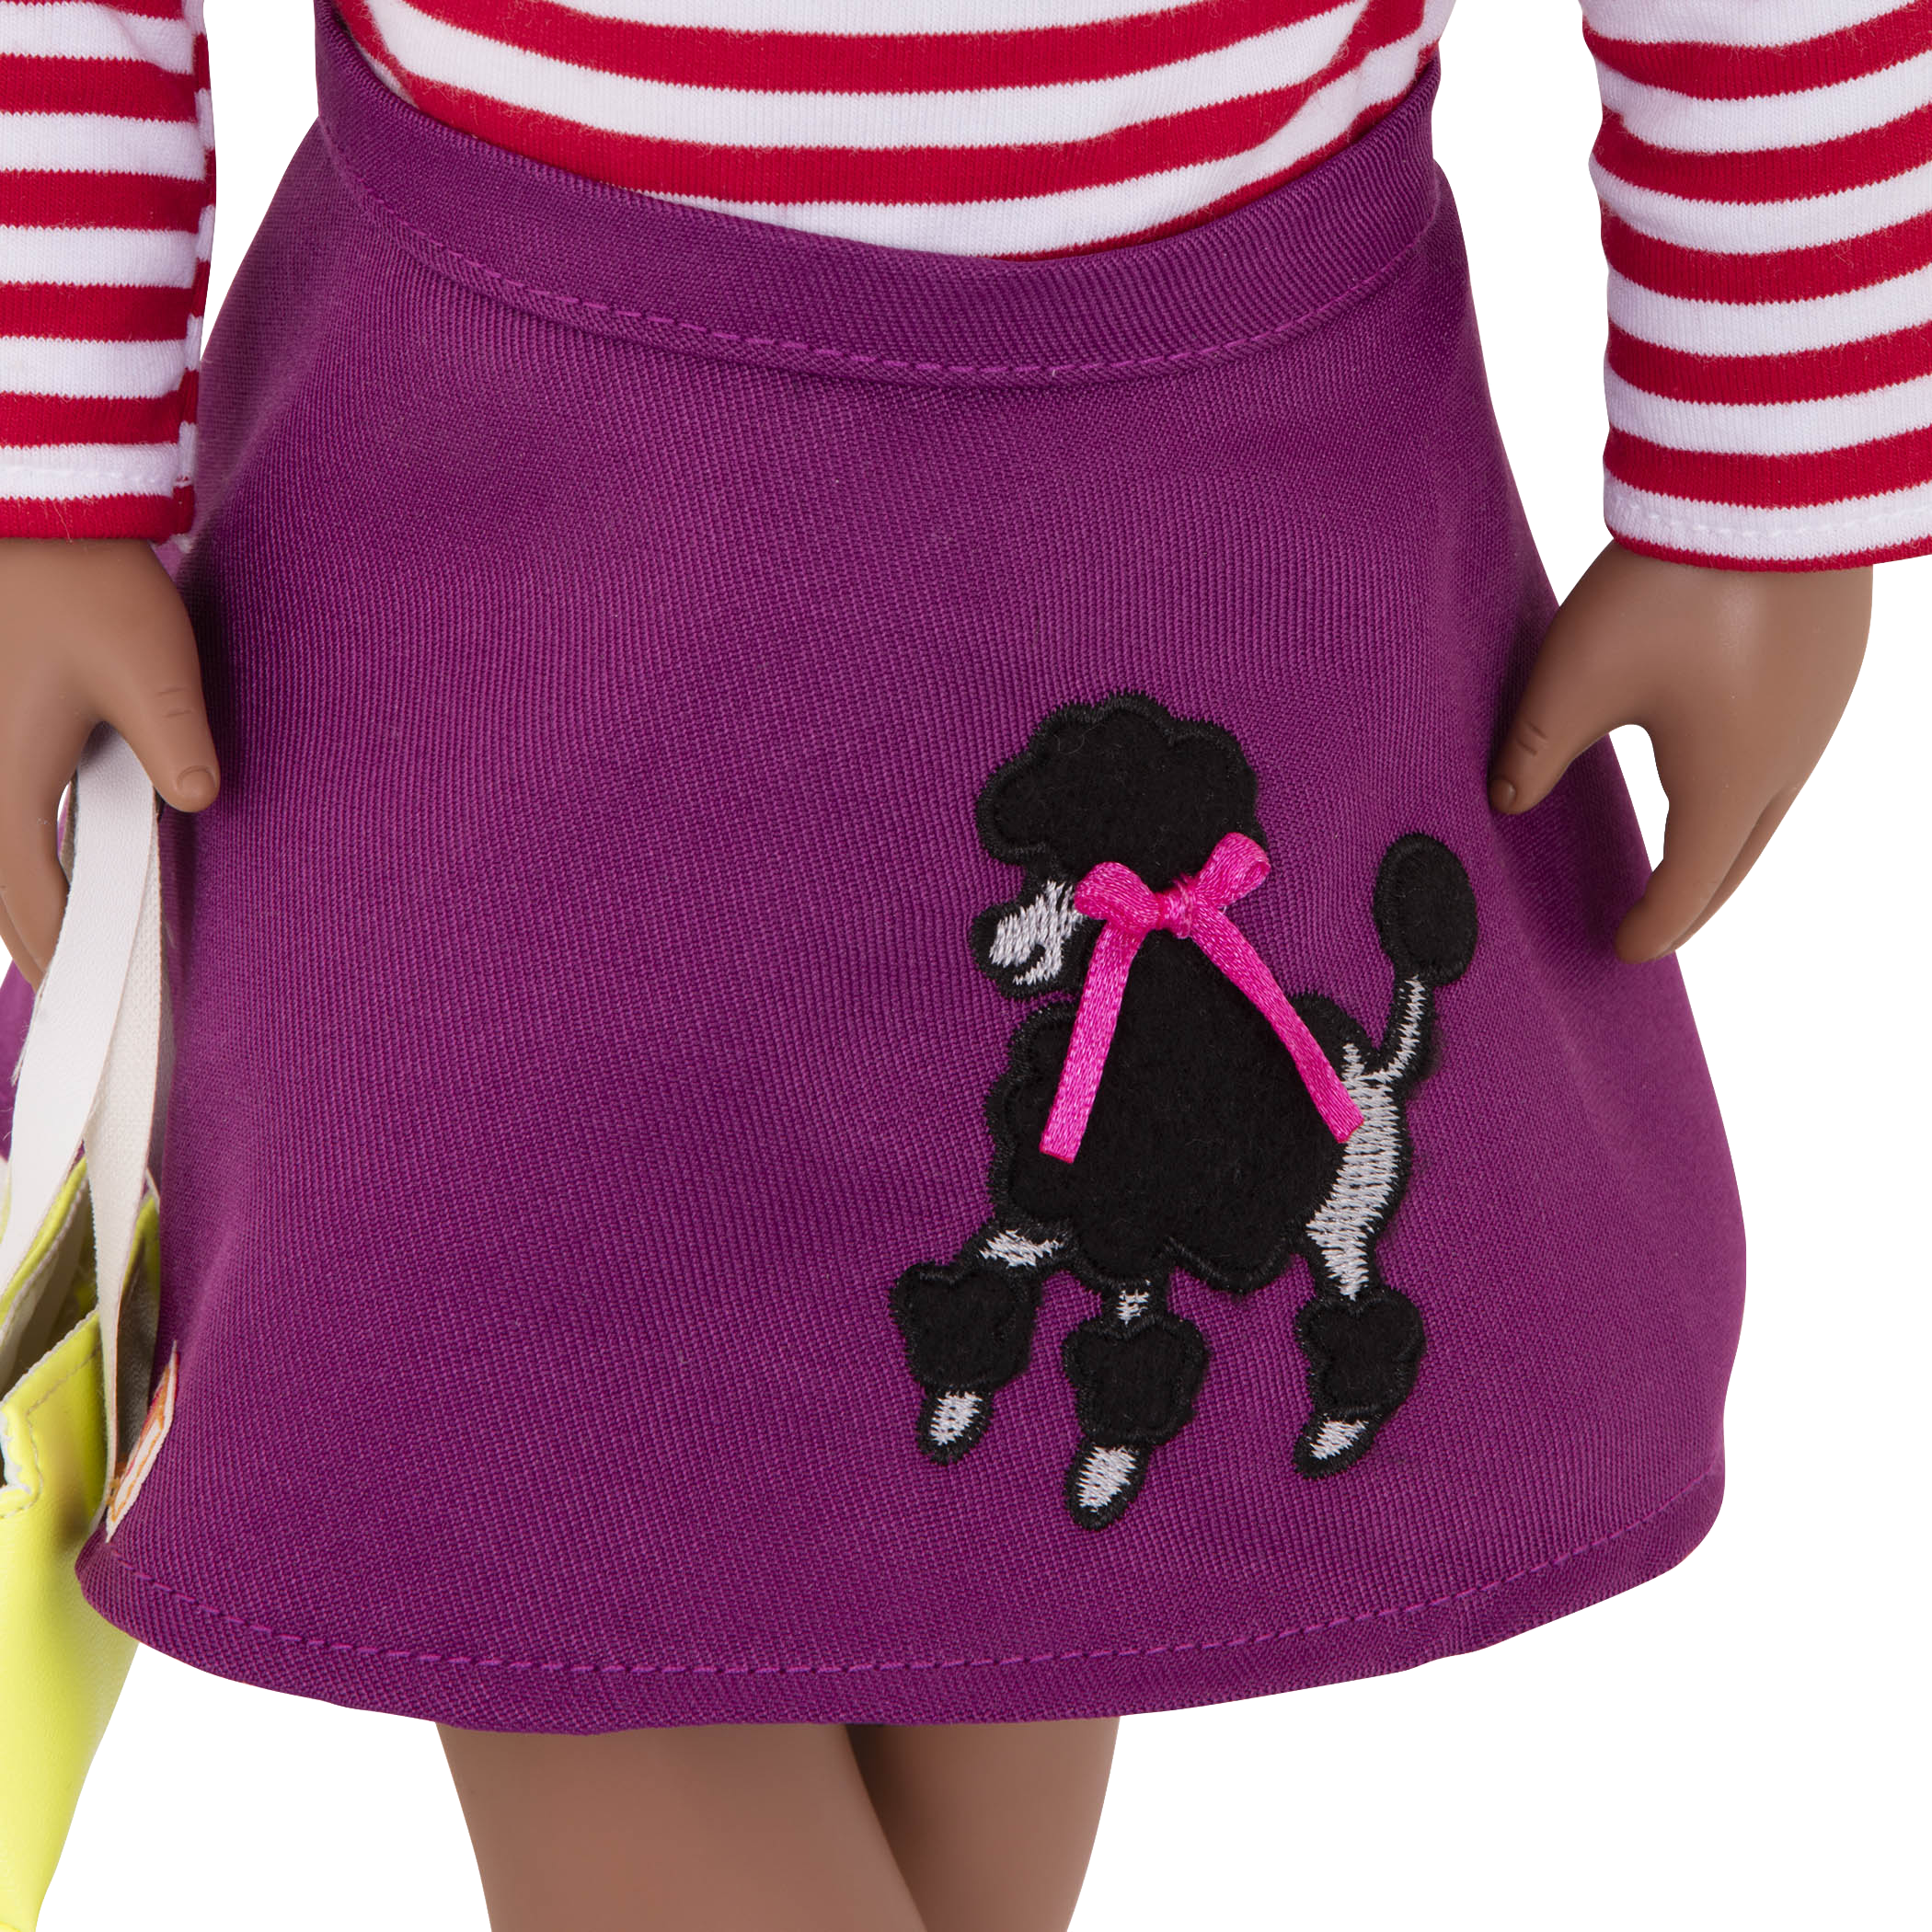 Poodle skirt detail